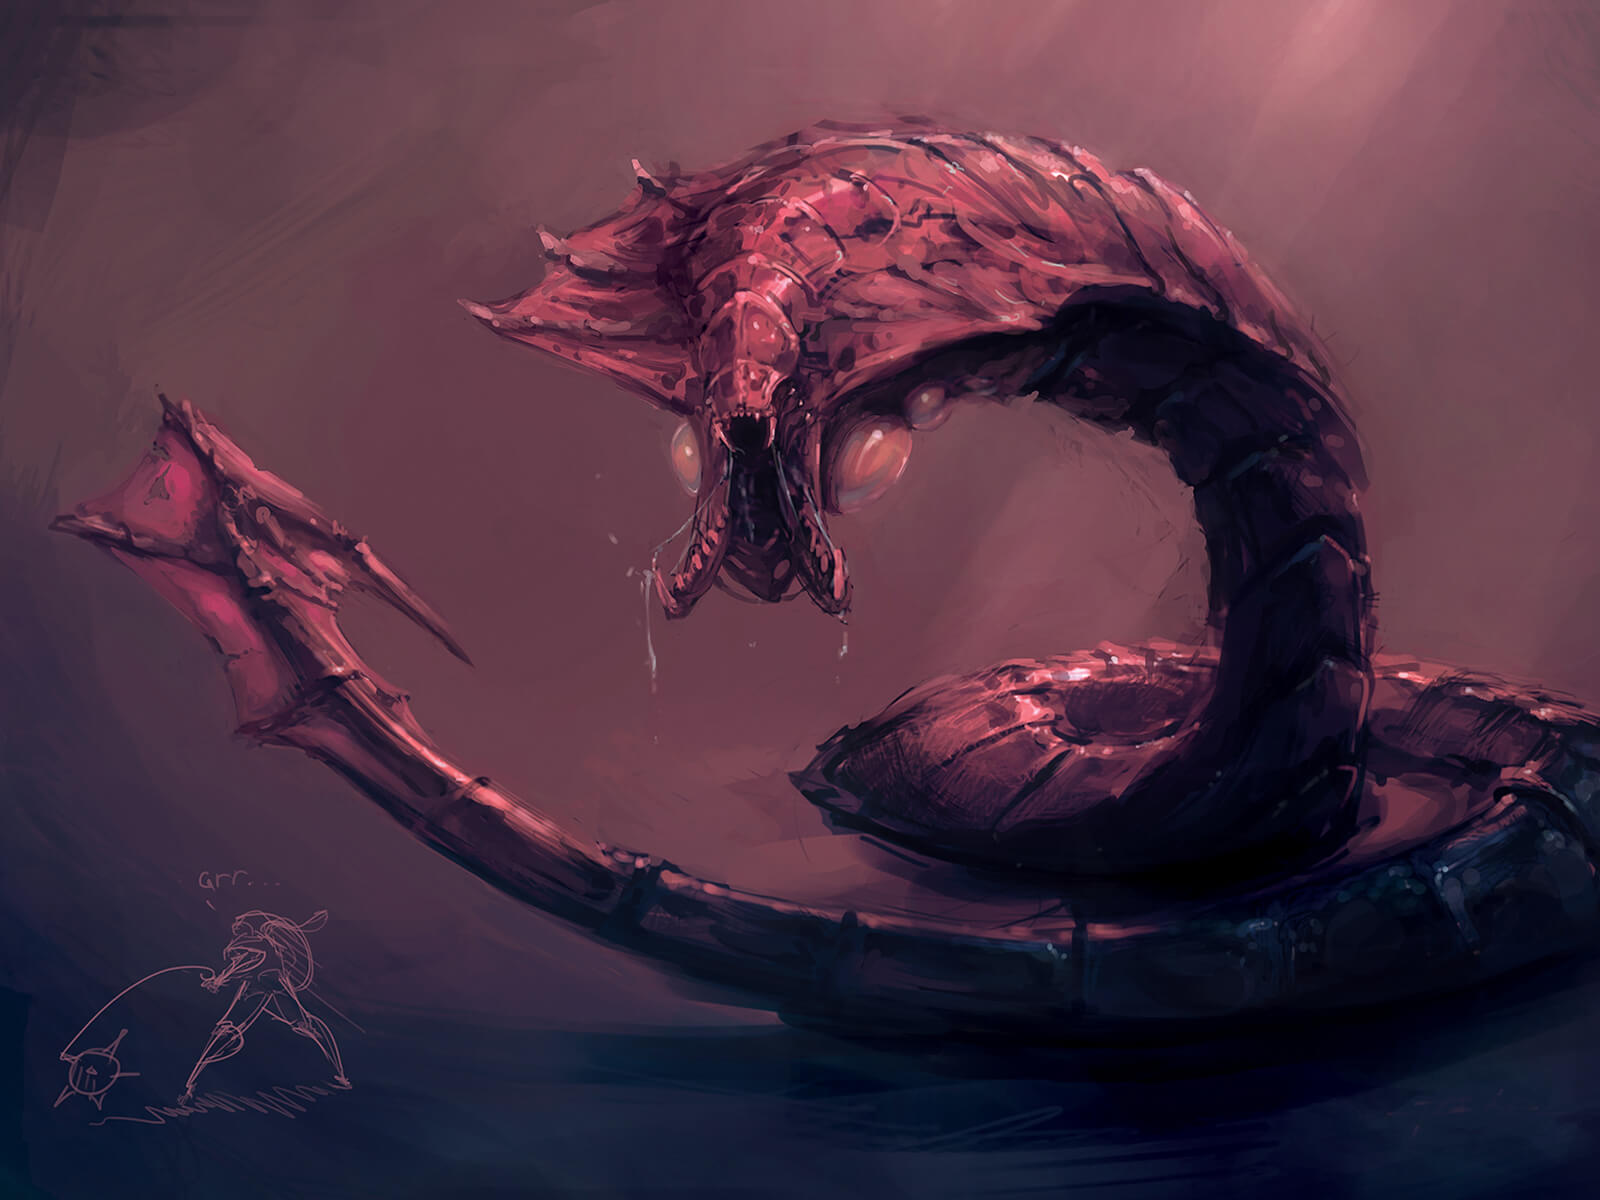 A segmented worm-like monster ending in a sharp barb bares an open trap-jaw mouth filled with teeth under a dim, red light.